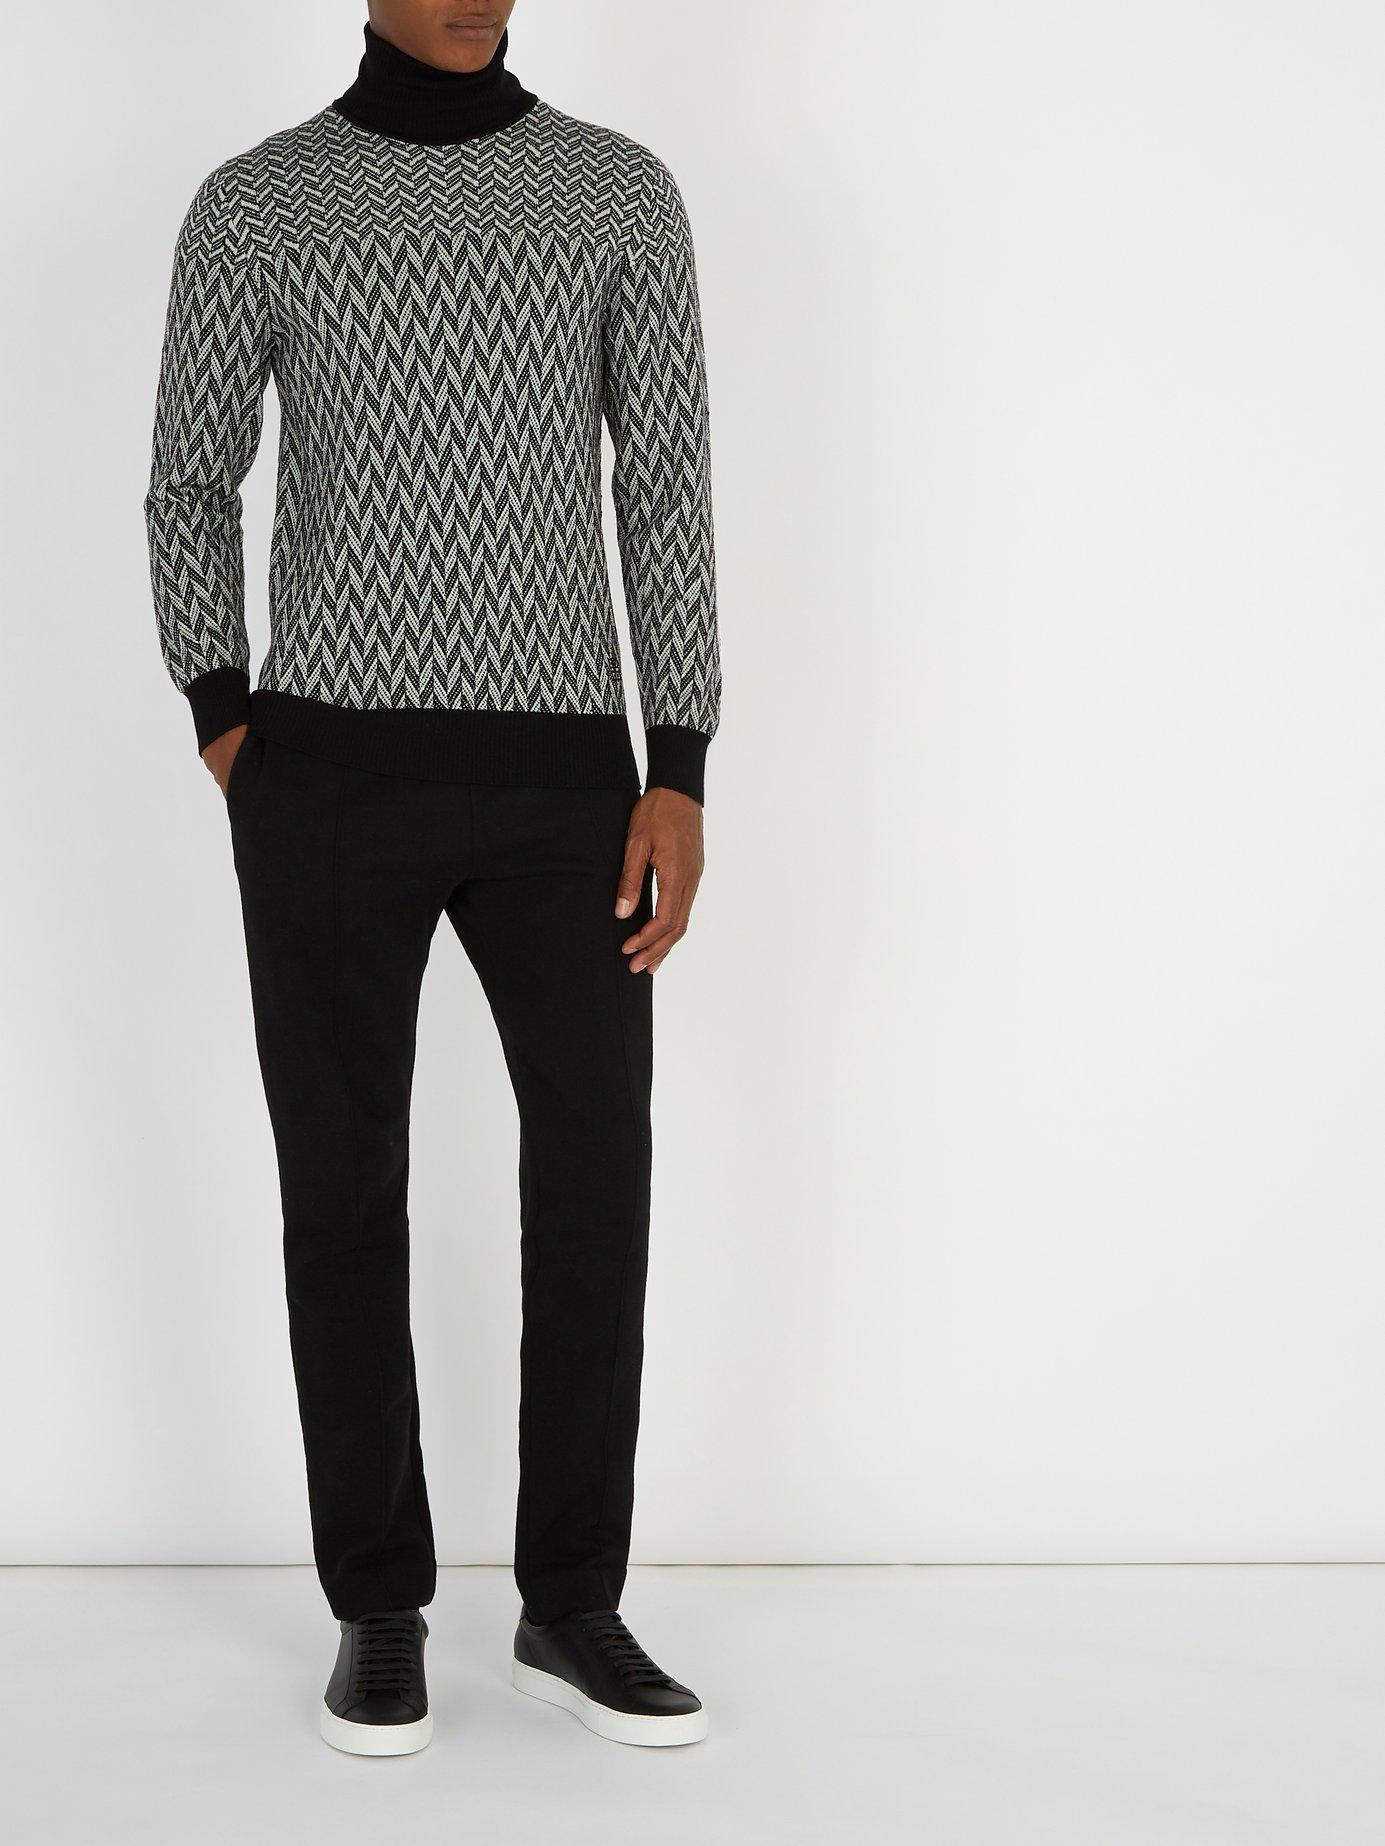 f3089a82 Lyst - Givenchy Graphic Cotton Sweater in Black for Men